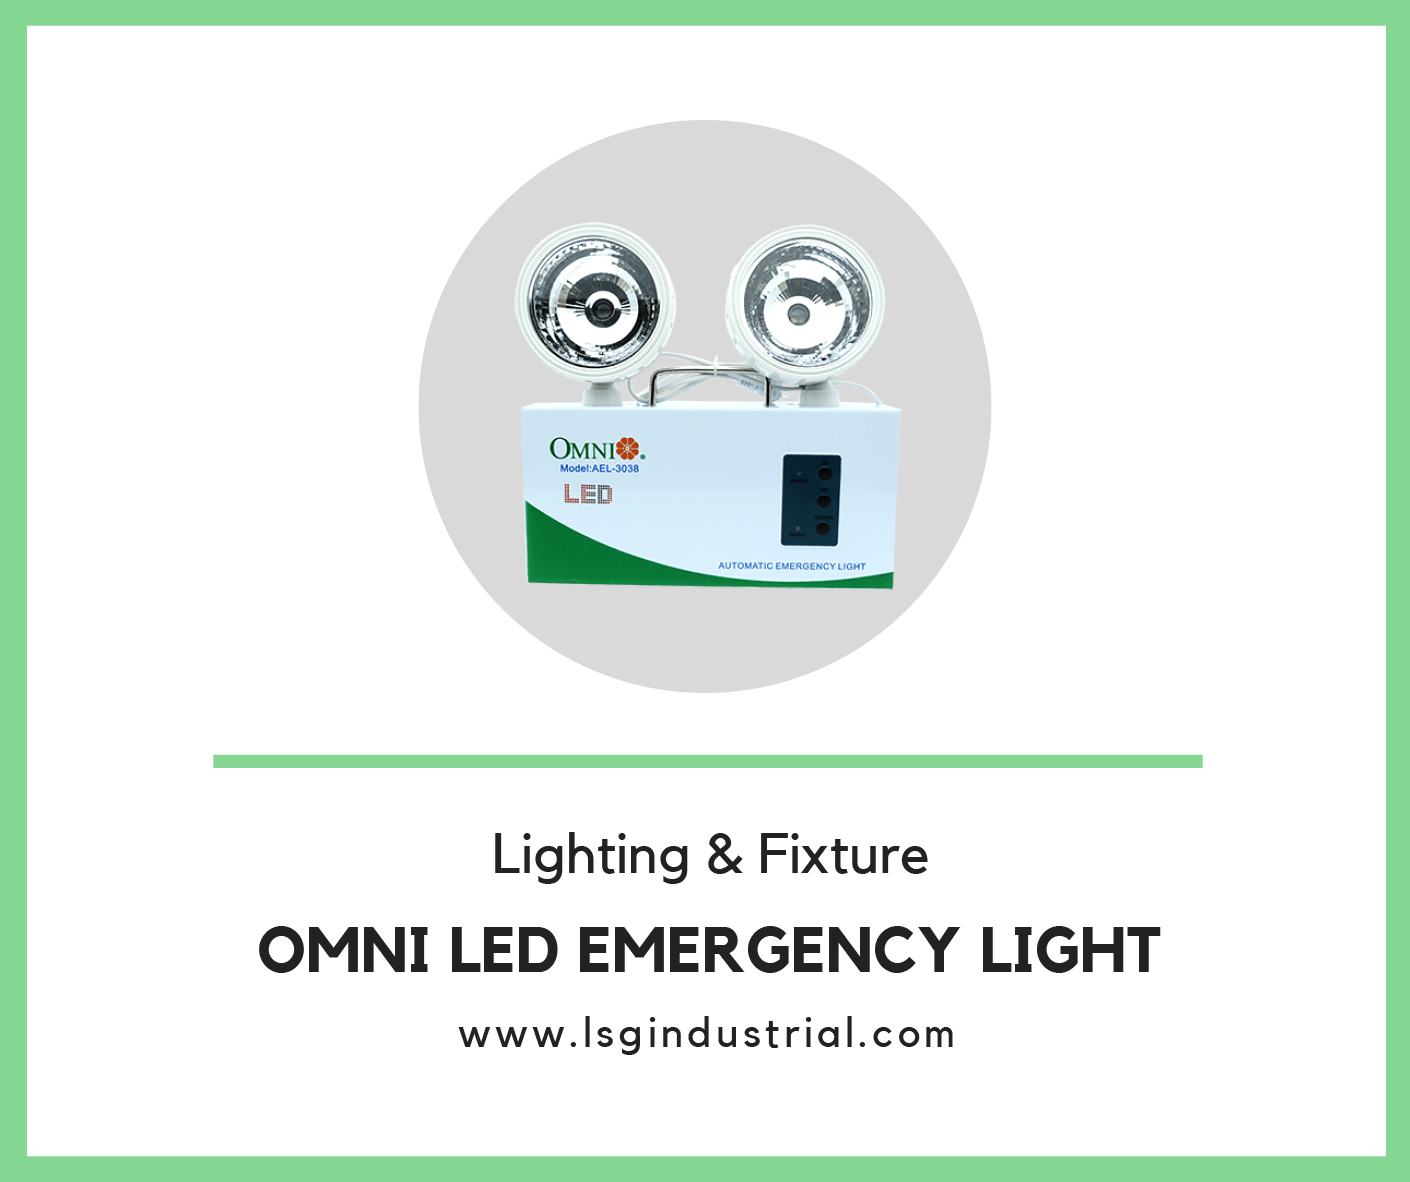 Pin By Lsg Industrial On Omni Pinterest Office Fully Automatic Emergency Light Visit